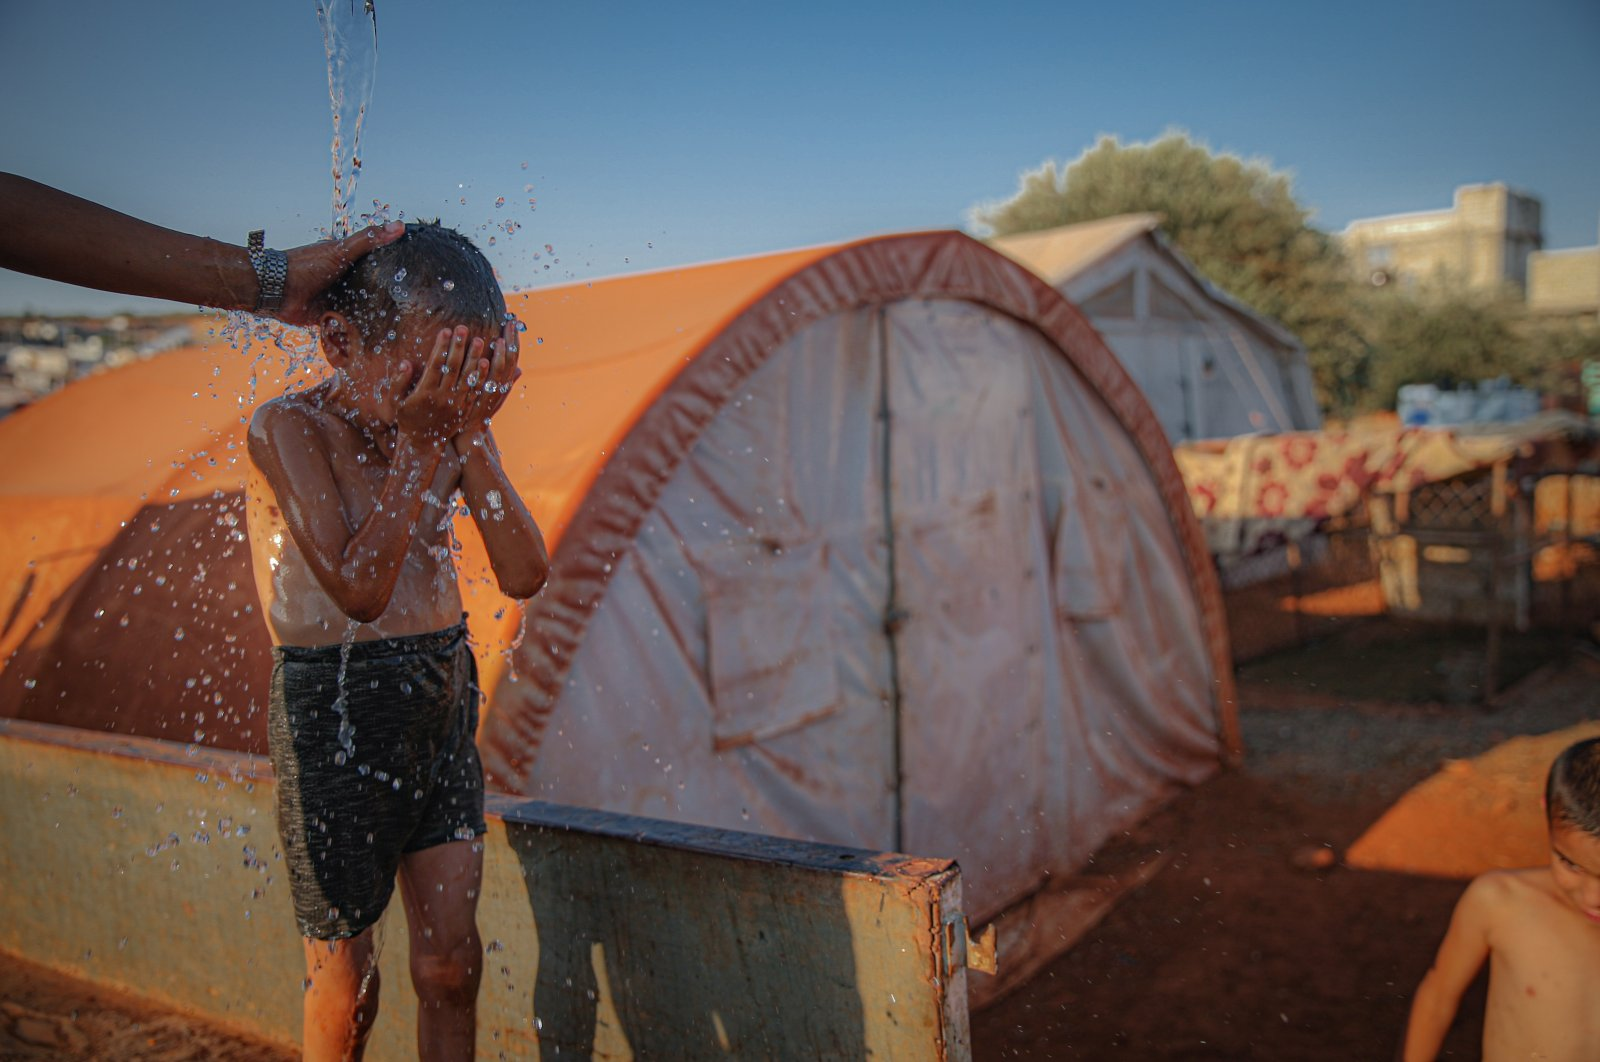 A child is seen near their tent in a camp for displaced people in Idlib, northwestern Syria, July 29, 2021. (AA Photo)